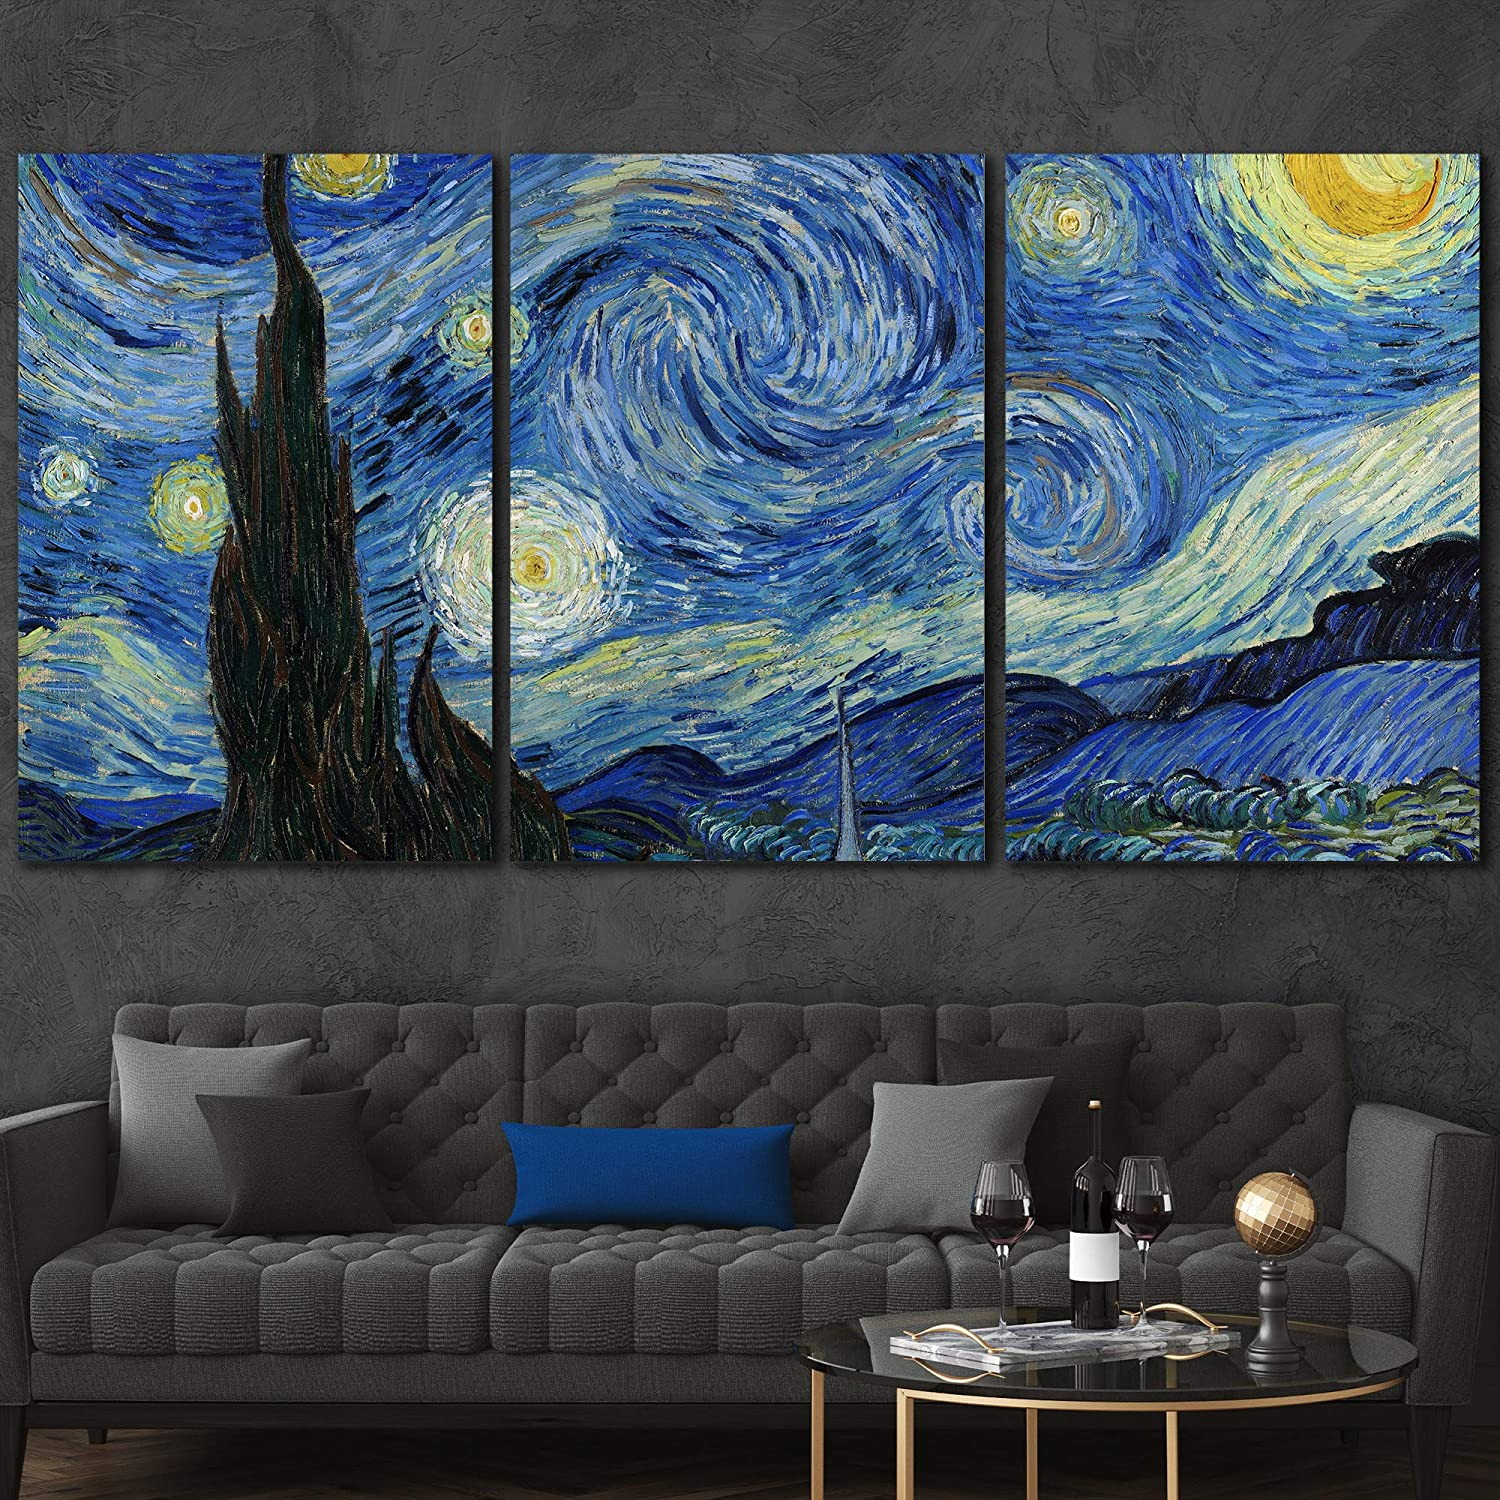 wall26 3 Panel Canvas Wall Art - Starry Night by Vincent Van Gogh - Giclee Print Gallery Wrap Modern Home Art Ready to Hang - 16